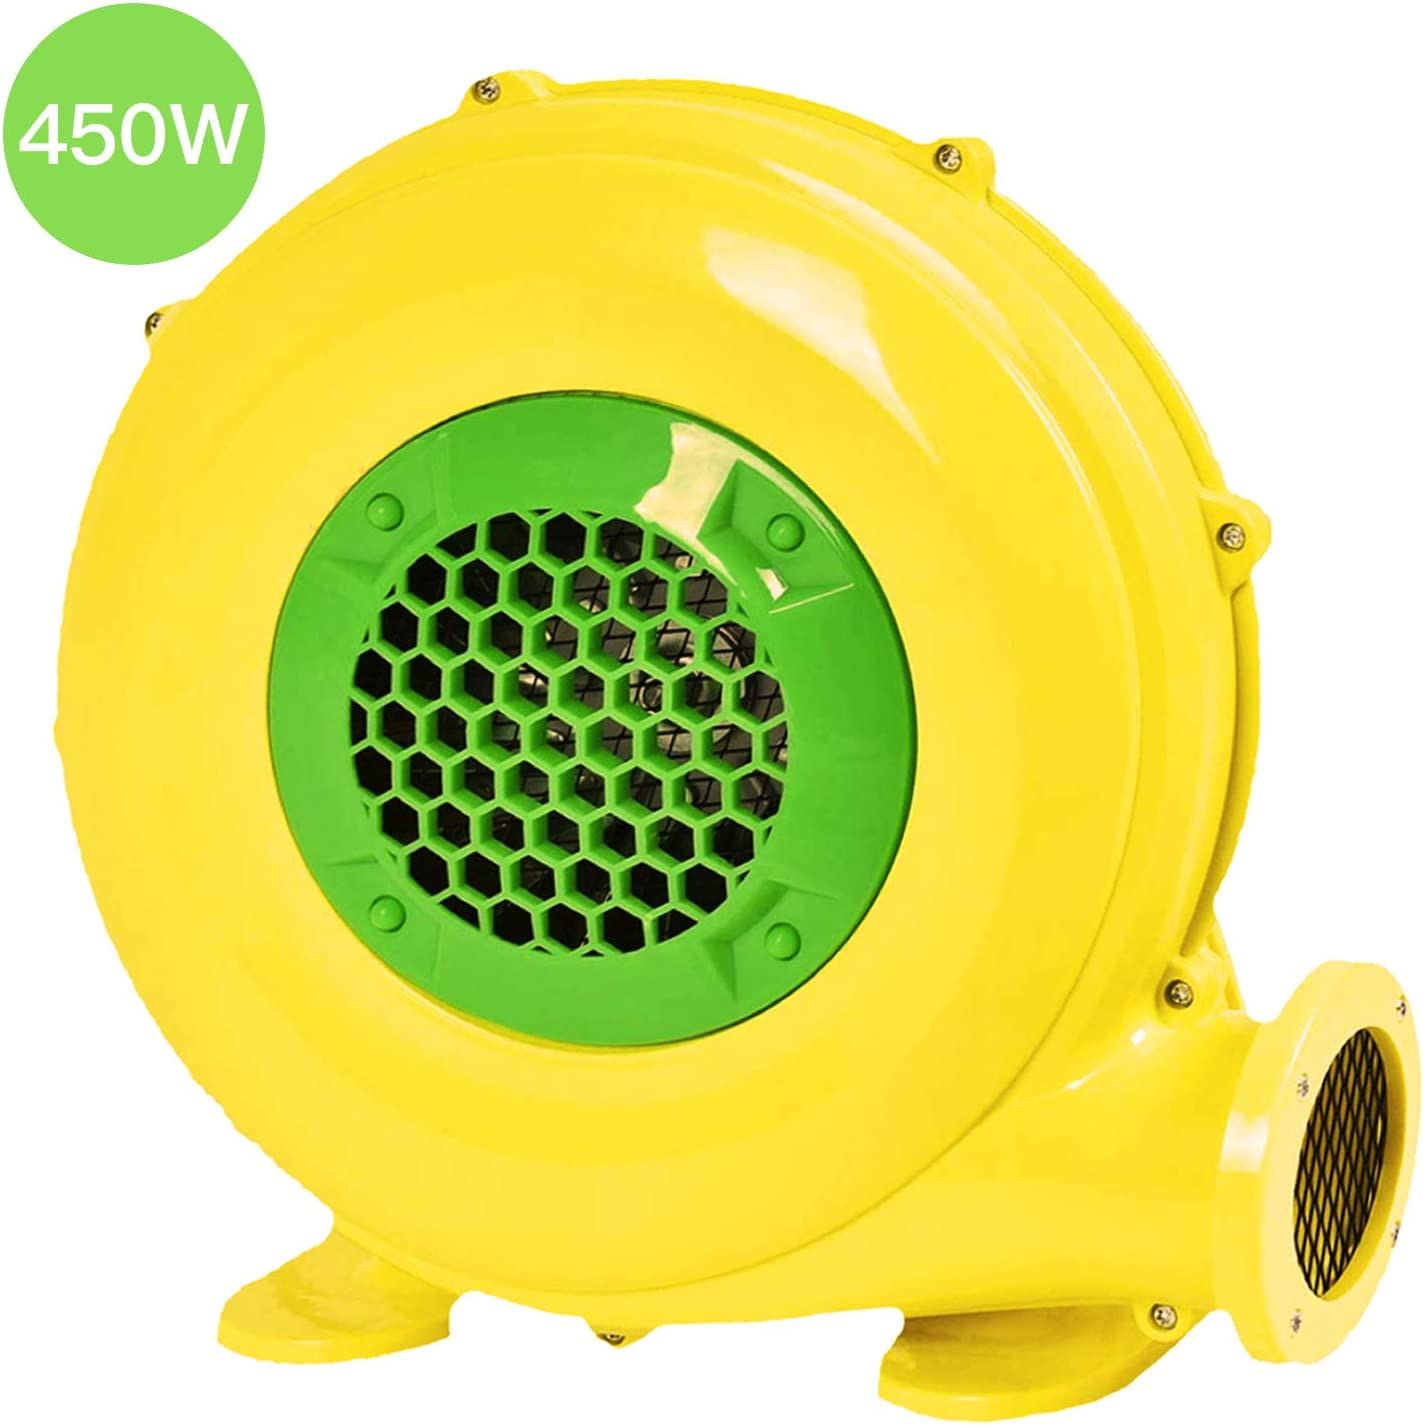 Royalblower Air Blower, Pump Fan Commercial Inflatable Bouncer Blower, Perfect for Inflatable Bounce House, Jumper, Bouncy Castle (450 Watt)